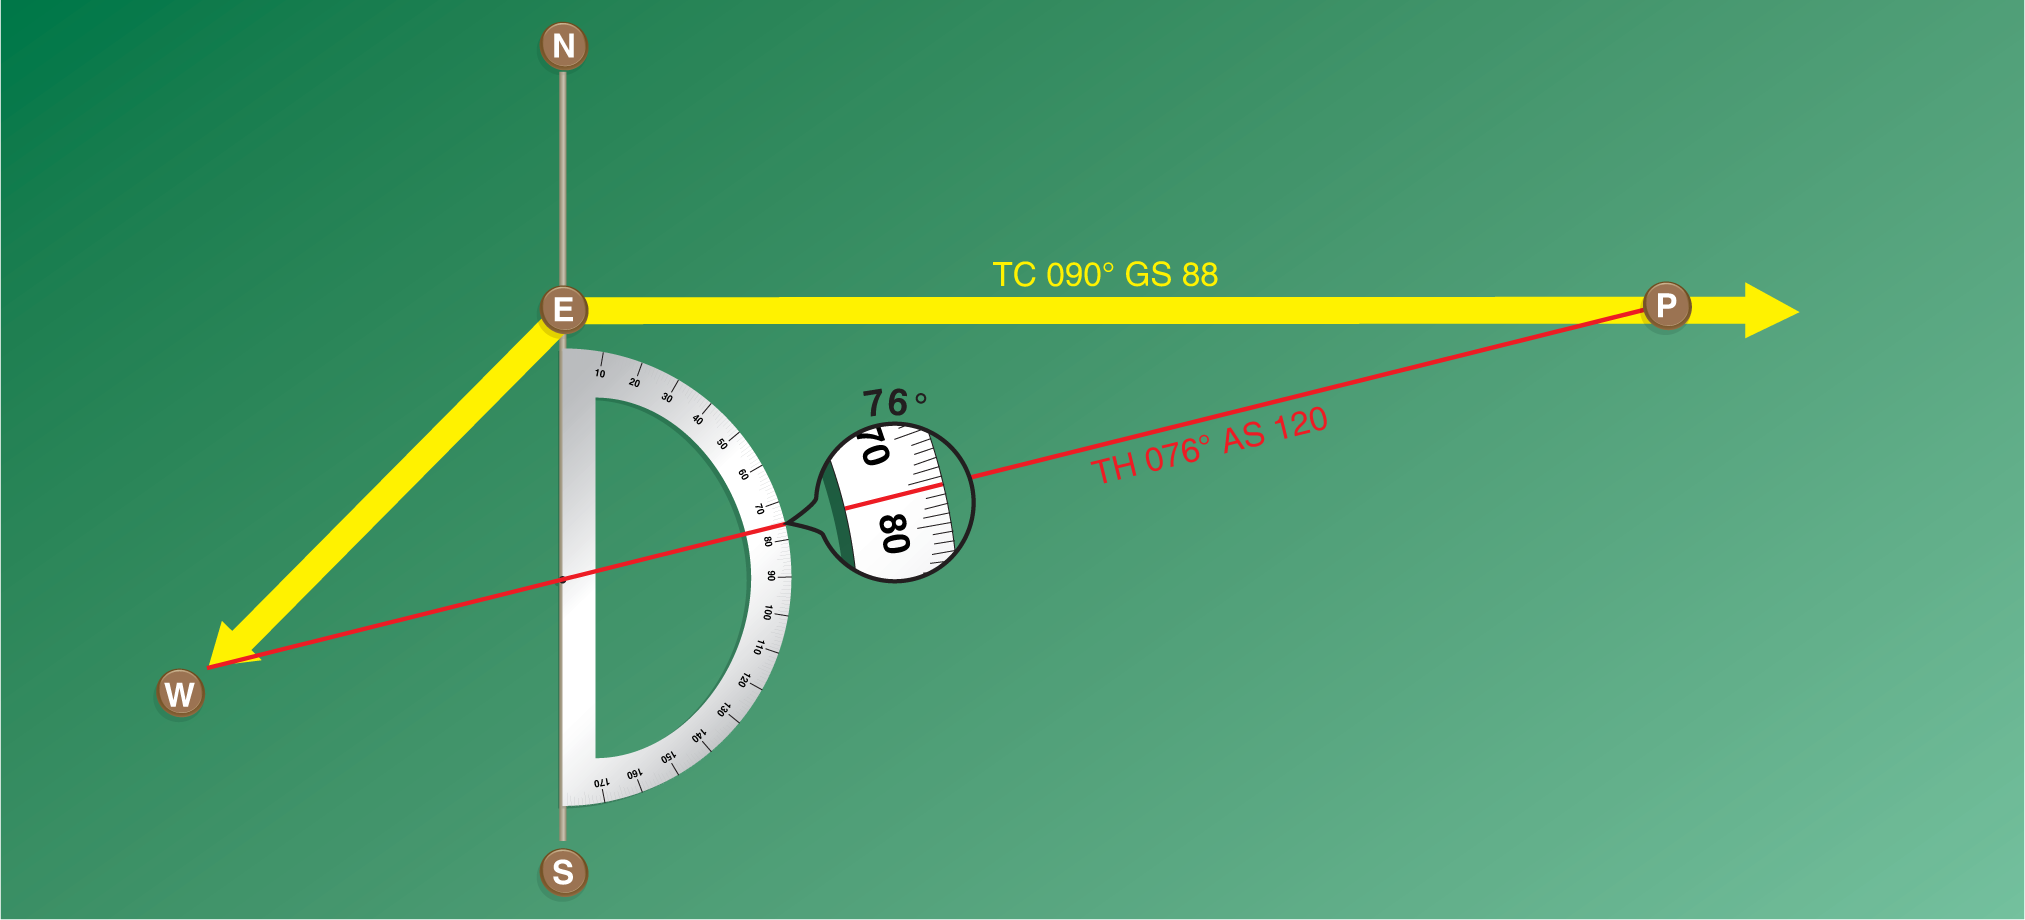 Figure 4. Finding true heading by the wind correction angle.